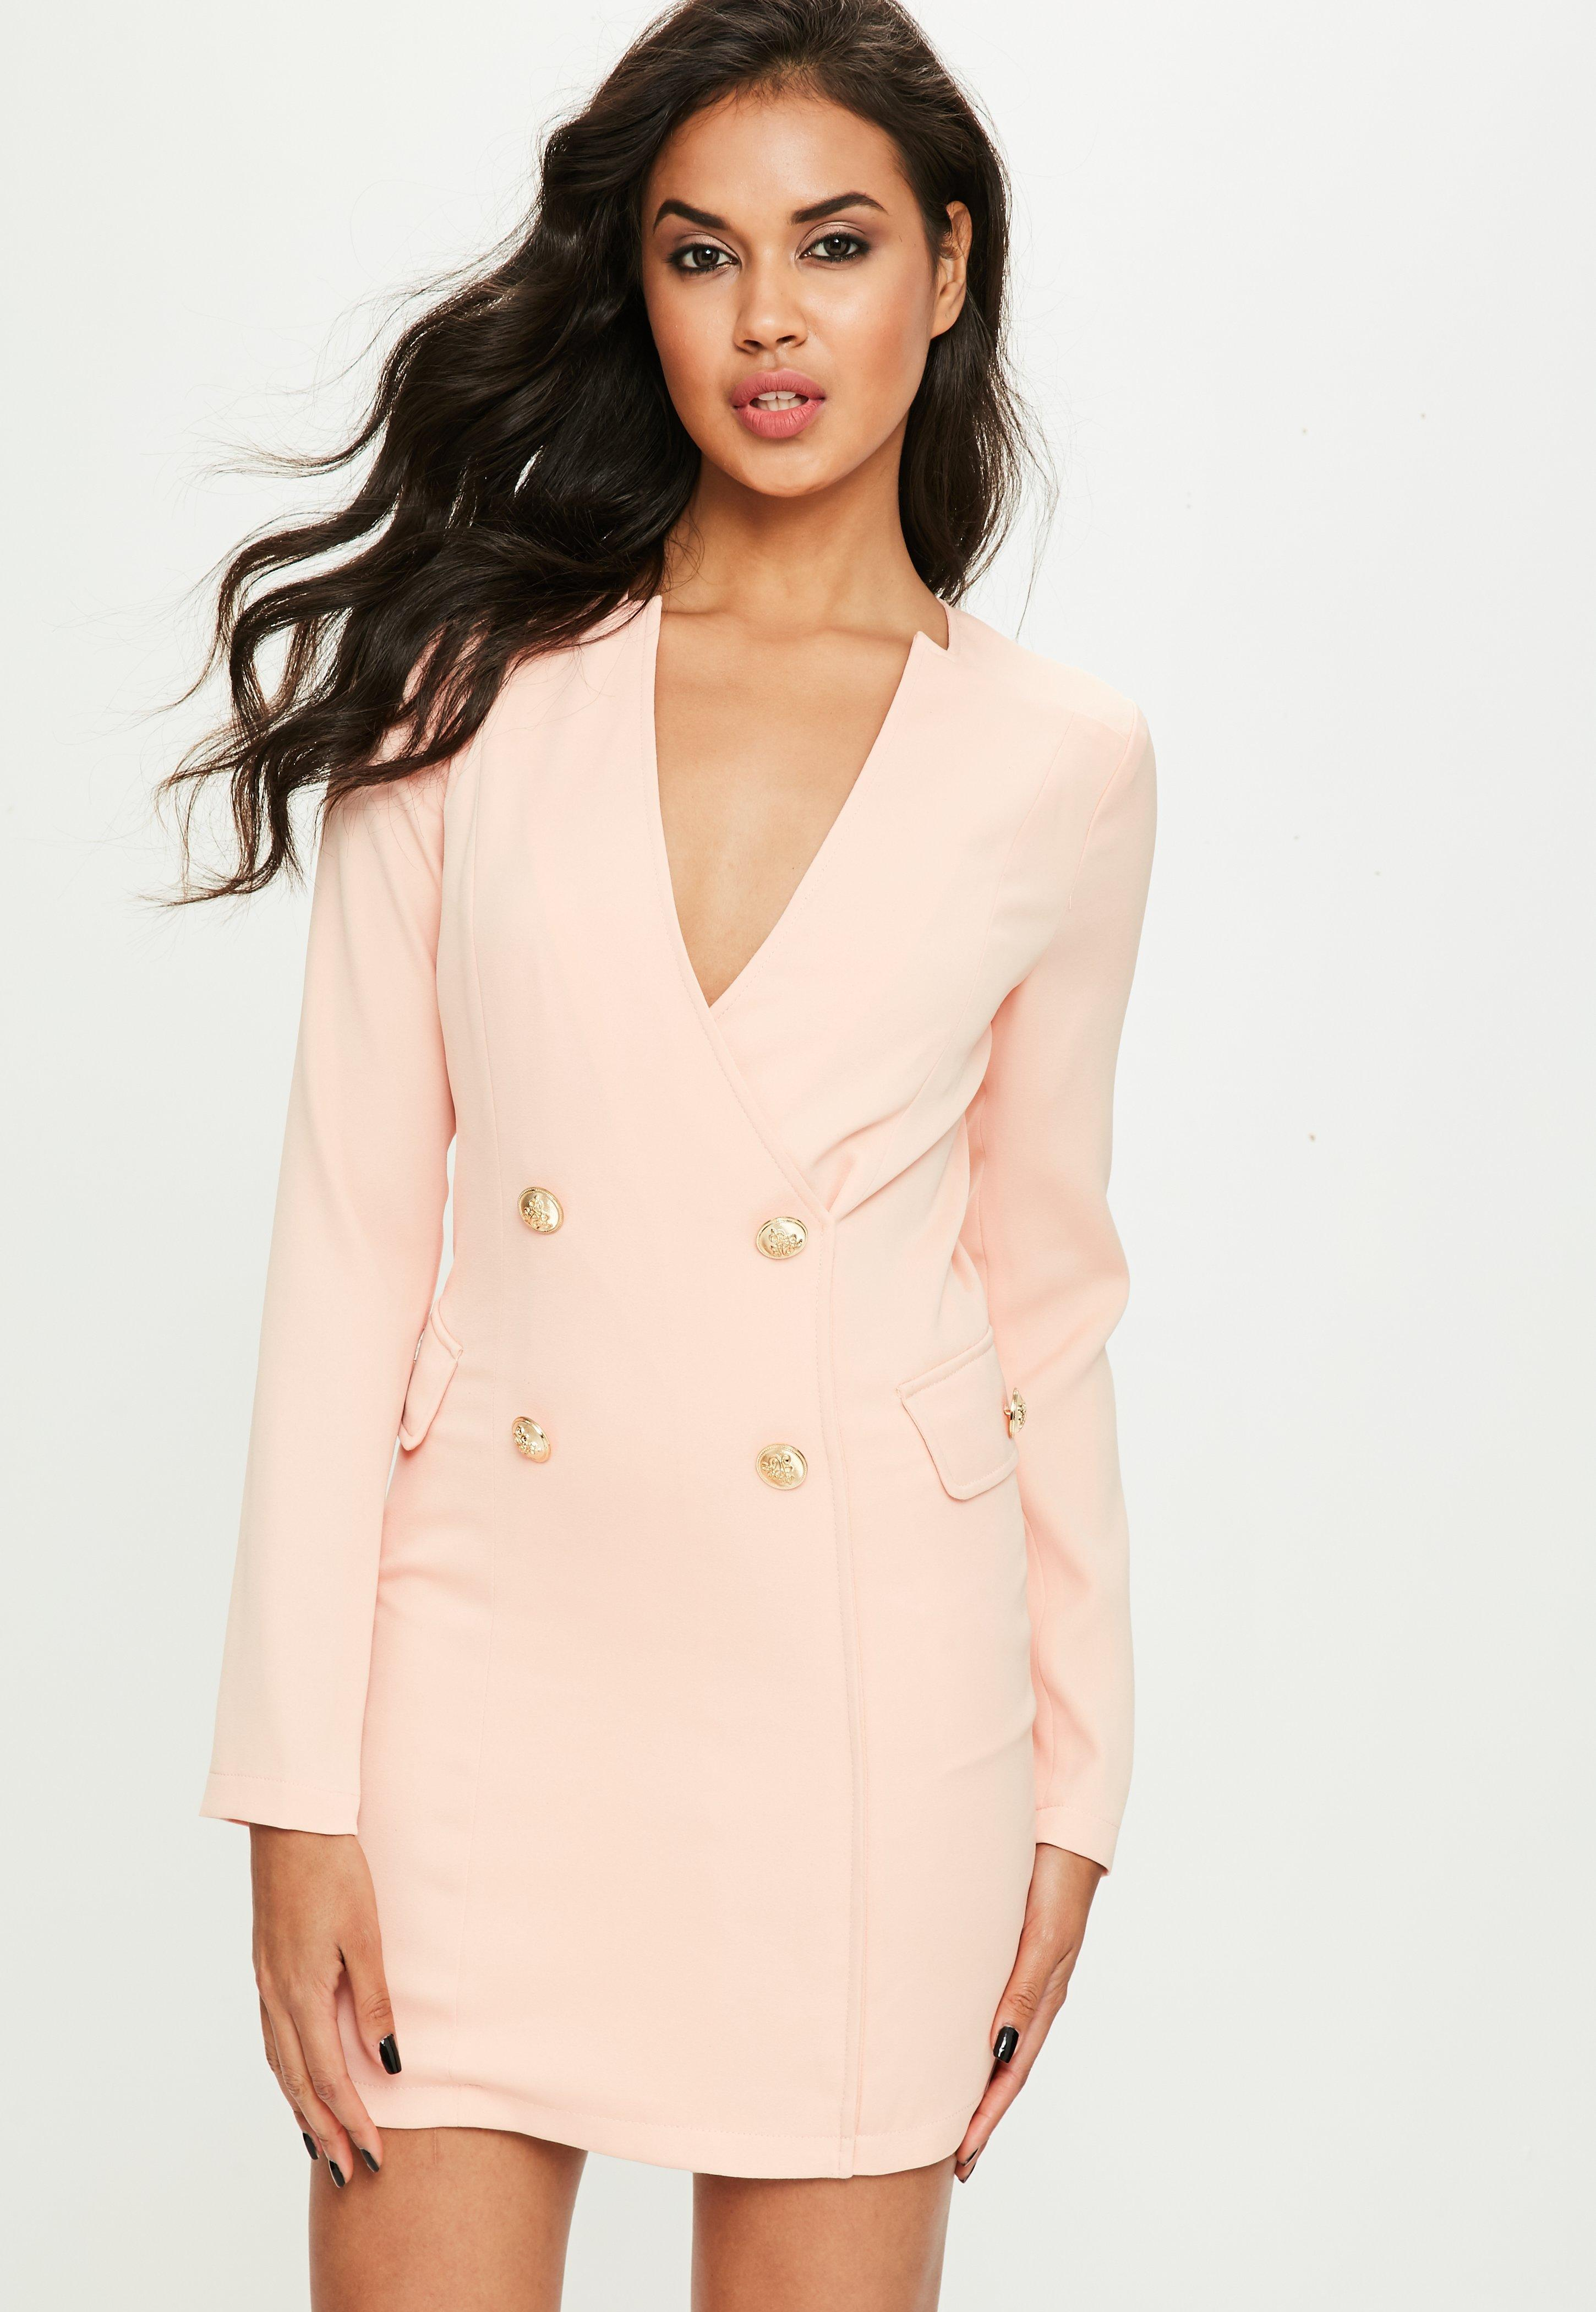 Tuxedo Dresses - Women's Blazer Dresses Online | Missguided